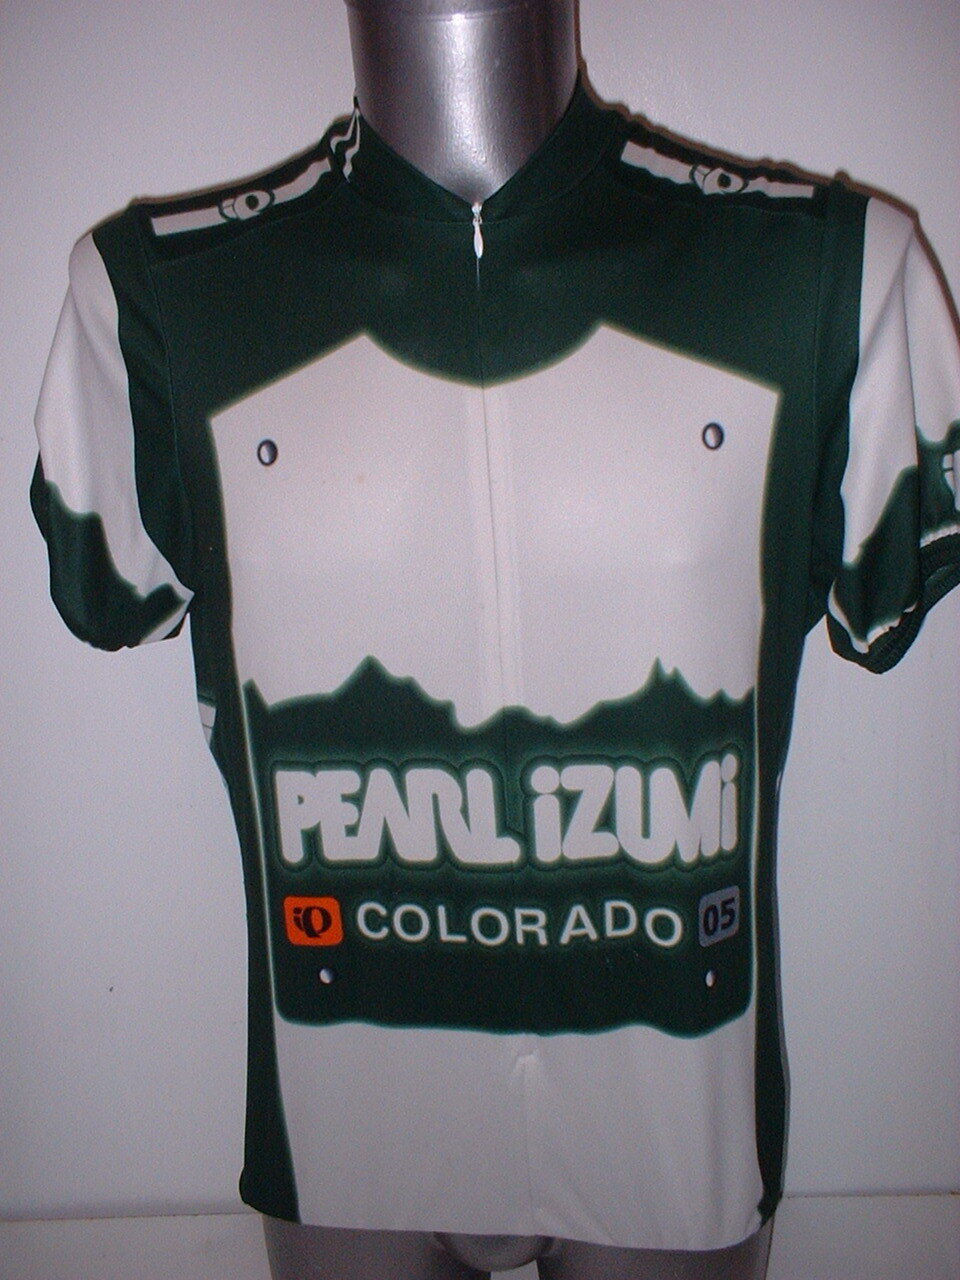 Pearl Izumi  colorado Shirt Jersey Adult Large Cycling Cycle Bike Ciclismo Top  order now enjoy big discount